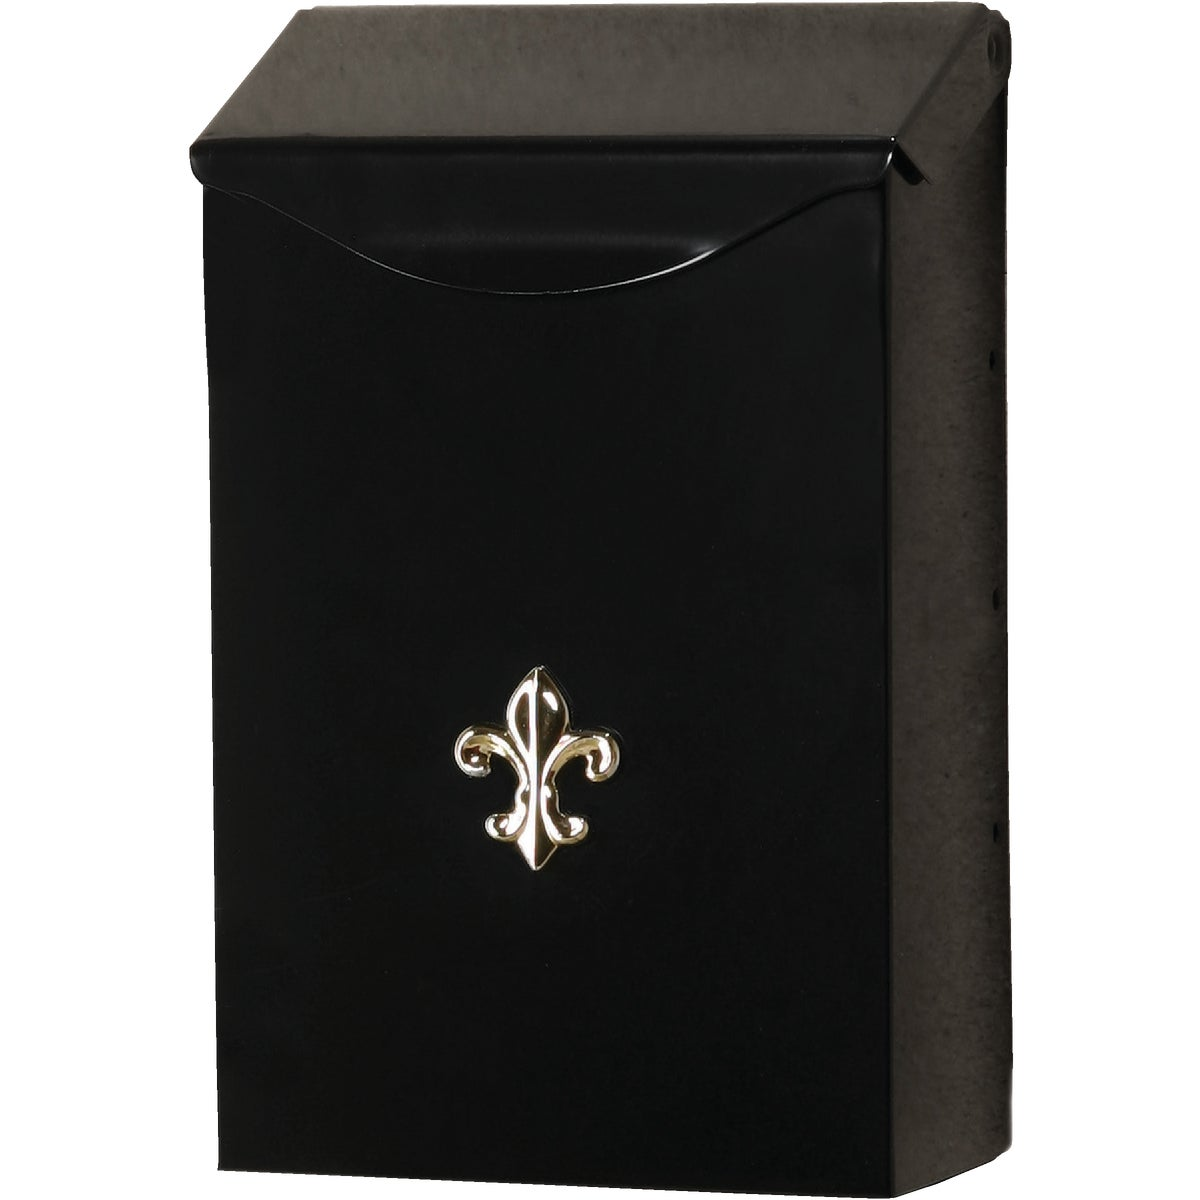 BLK VERT WALL MAILBOX - BW110000 by Solar Group